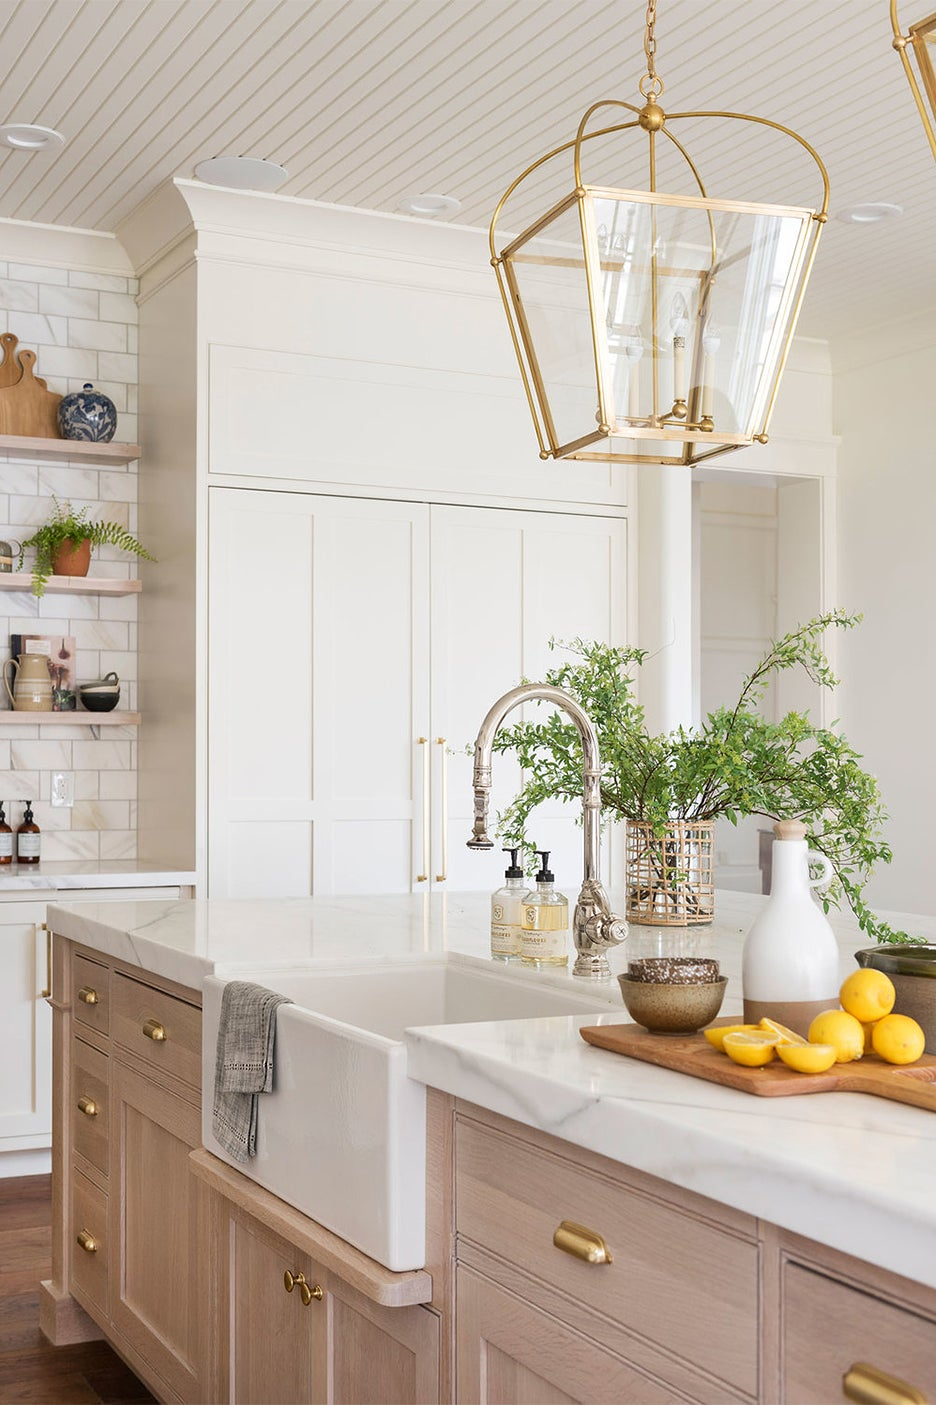 Five Ways To Spice Up Your Kitchen Sink Base Cabinet